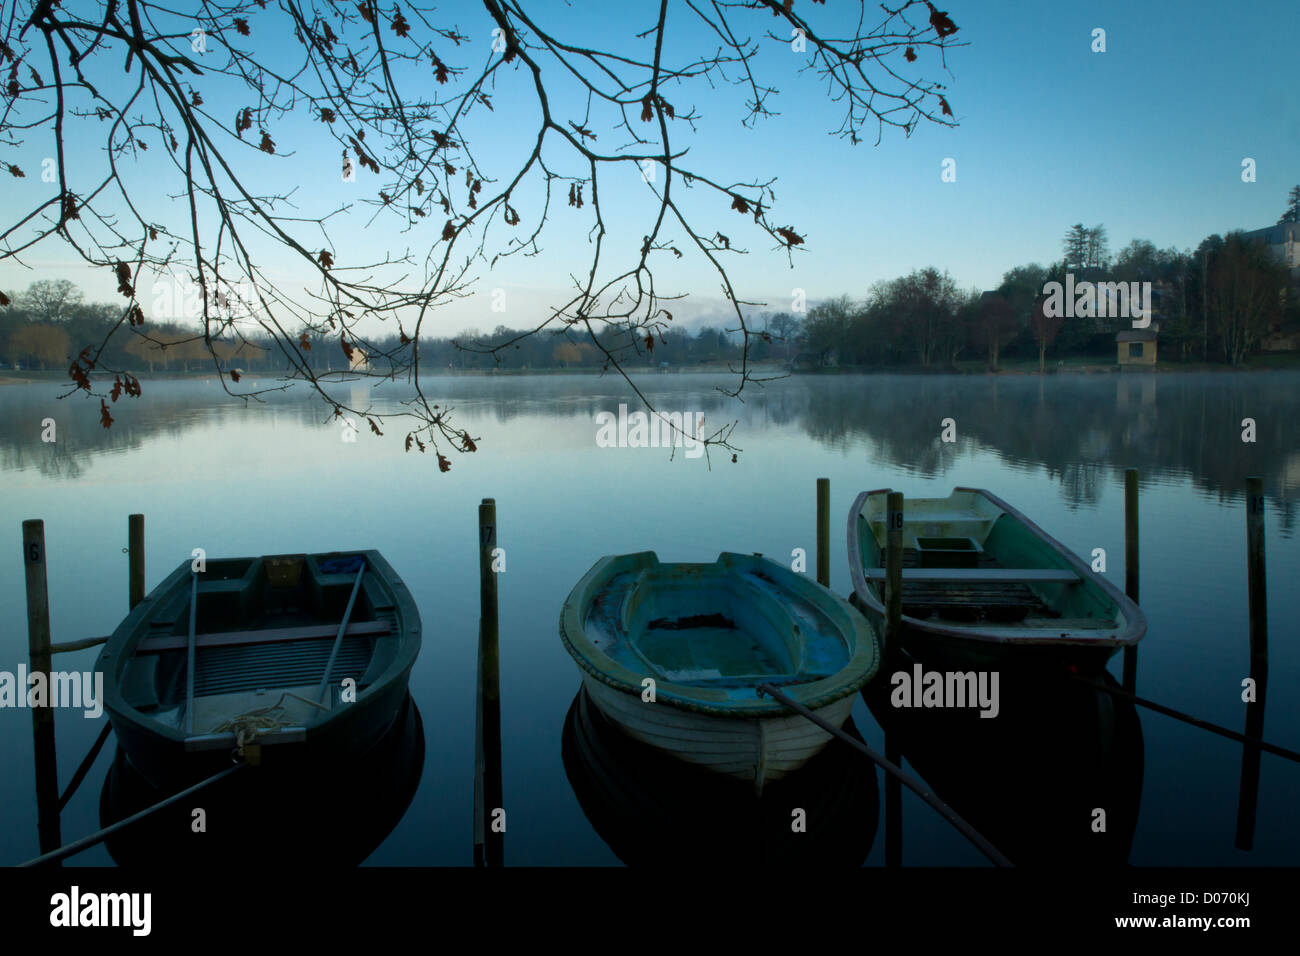 Empty boats moored on lake in countryside, France, Europe. - Stock Image